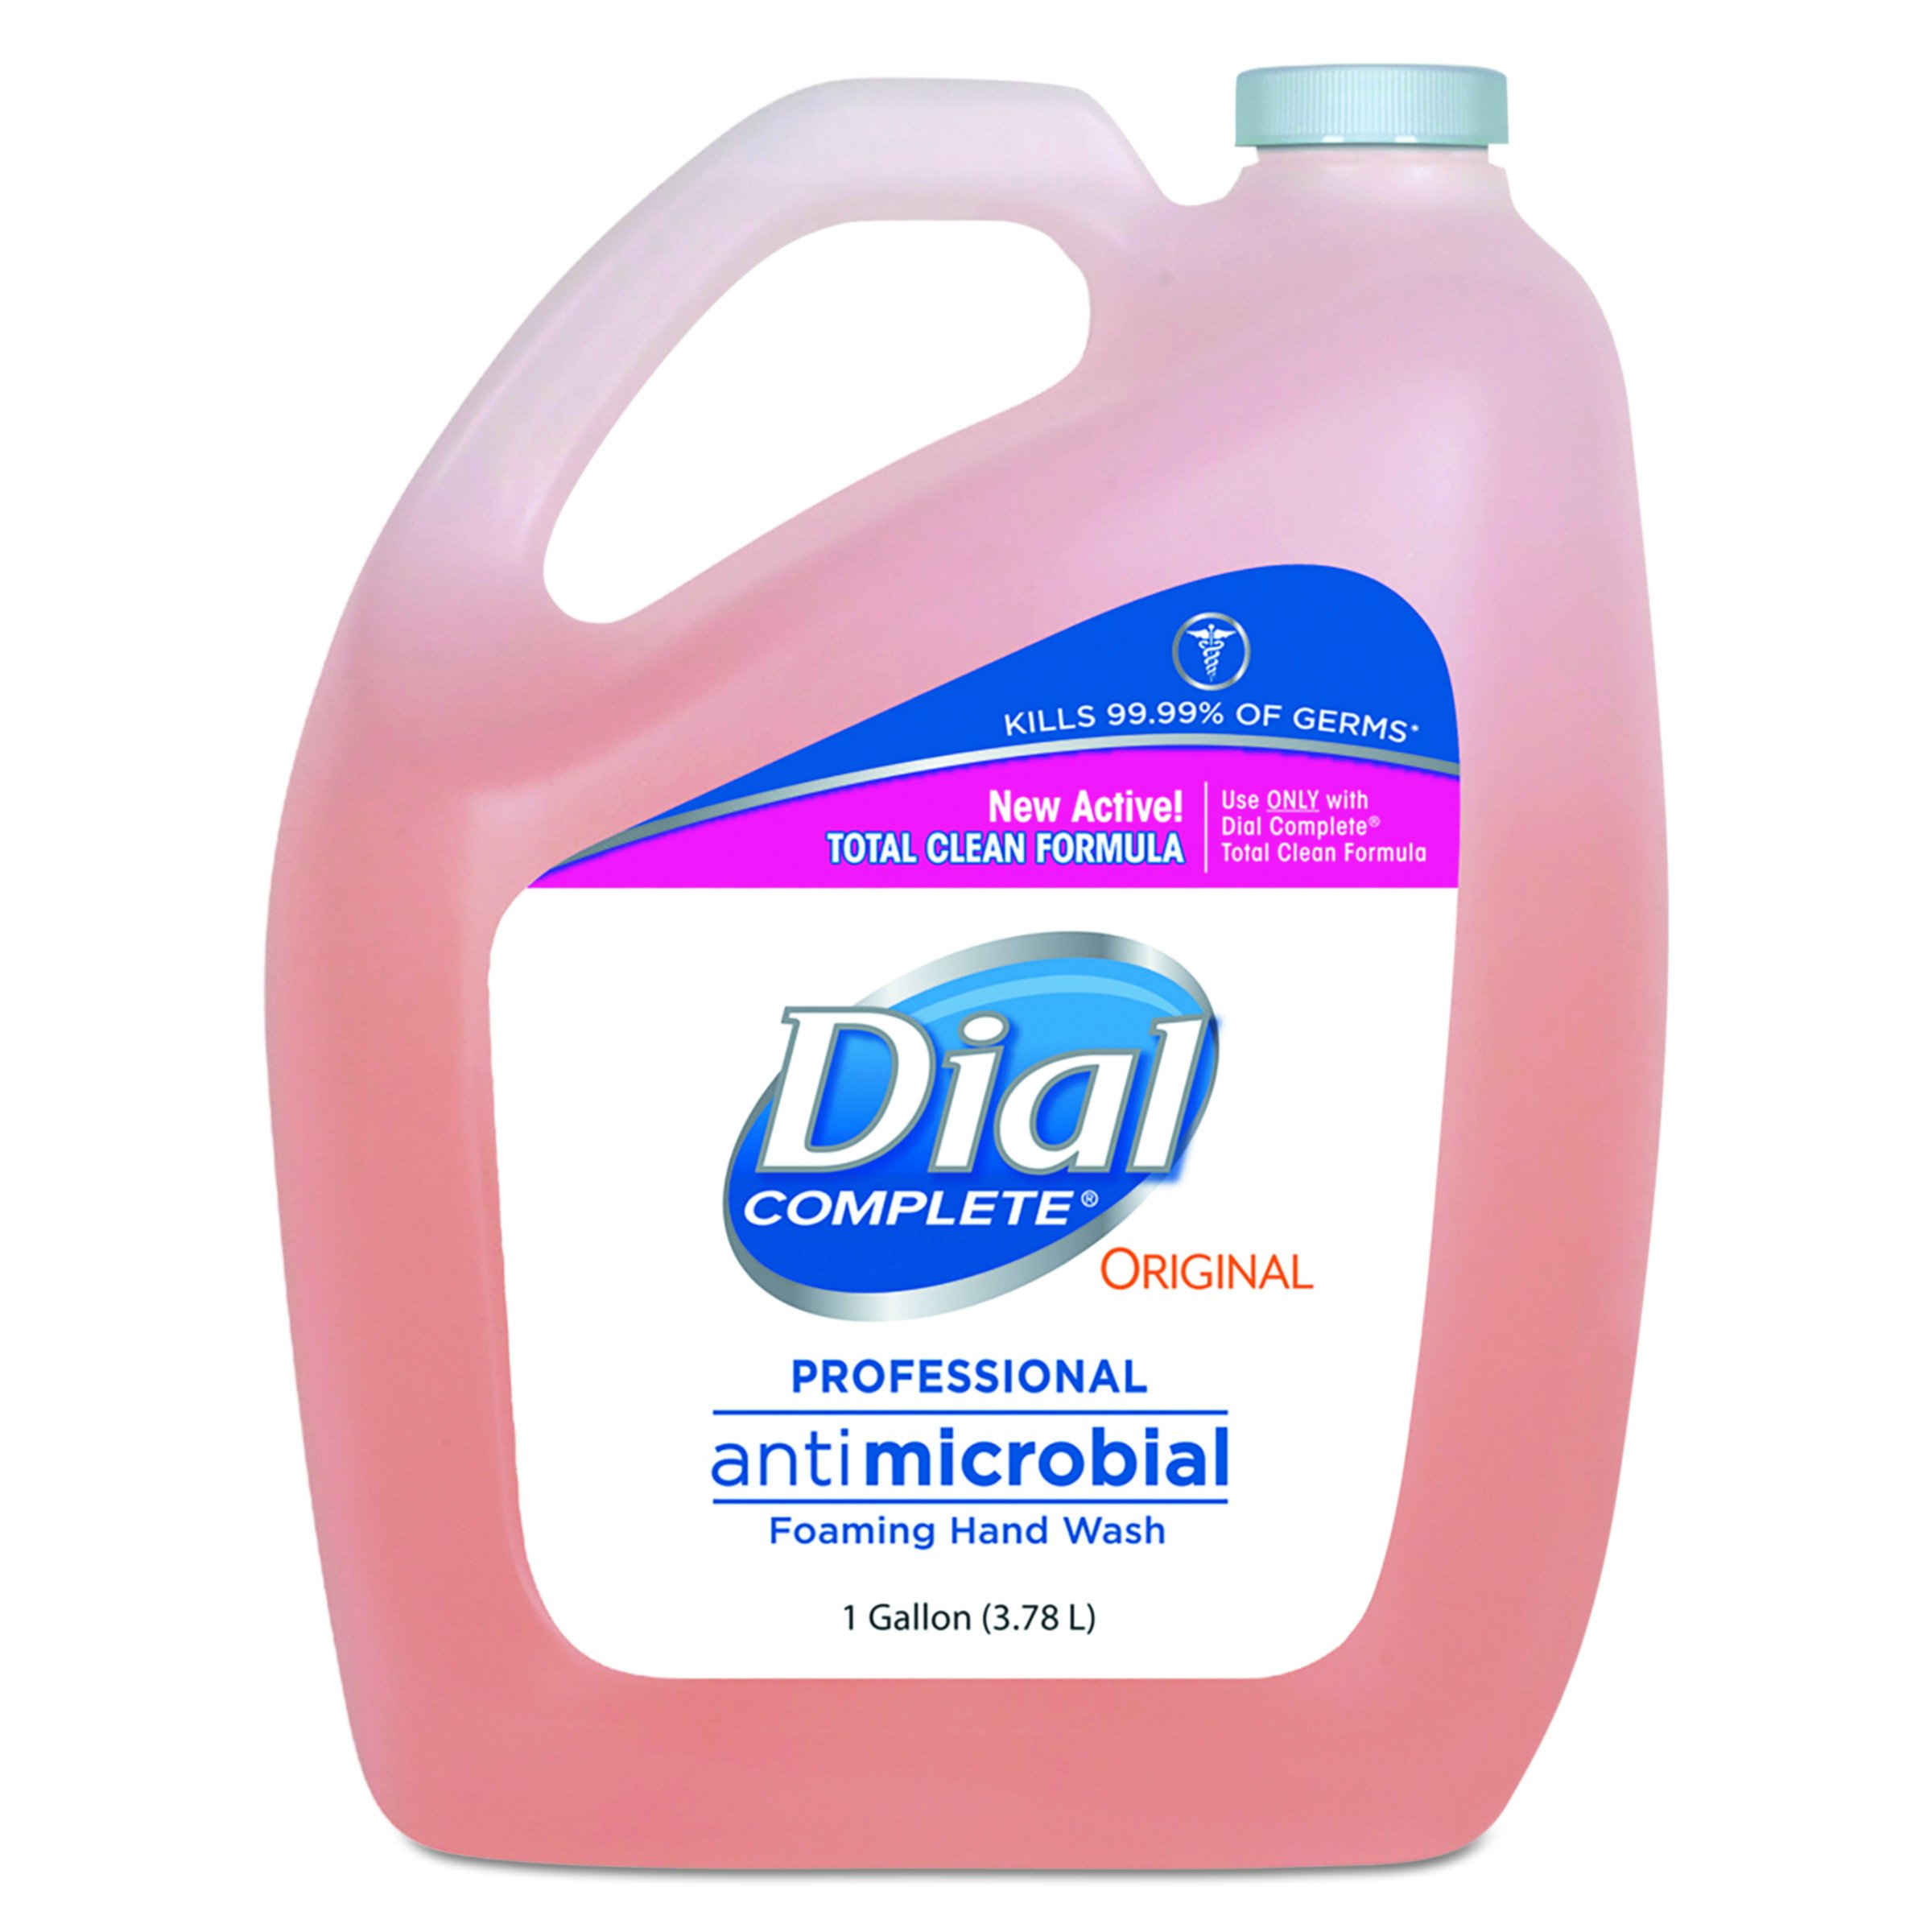 Dial Professional 99795CT Antimicrobial Foaming Hand Wash, Original Scent, 1gal. (Case of 4)